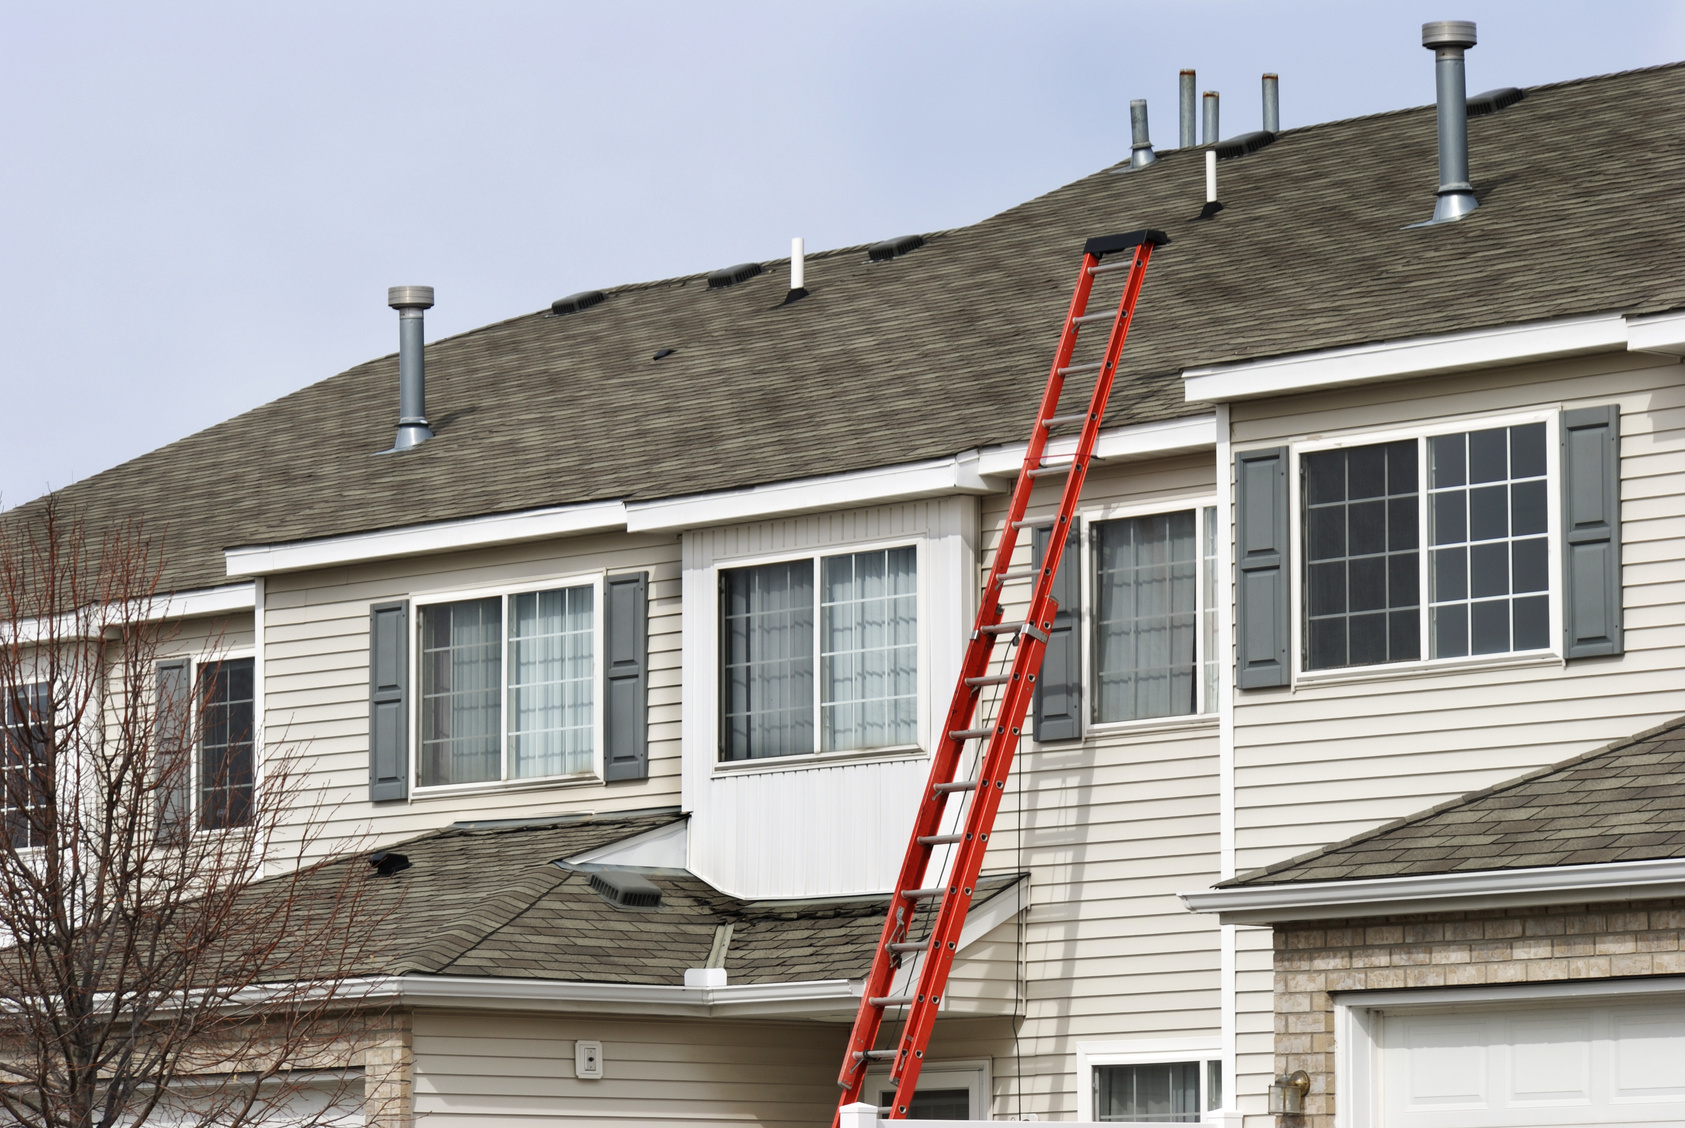 Ladder Assist - Our technicians are experts in steep slopes and high roofs, using aerial pictometry and digital photography to assist and document their inspections.